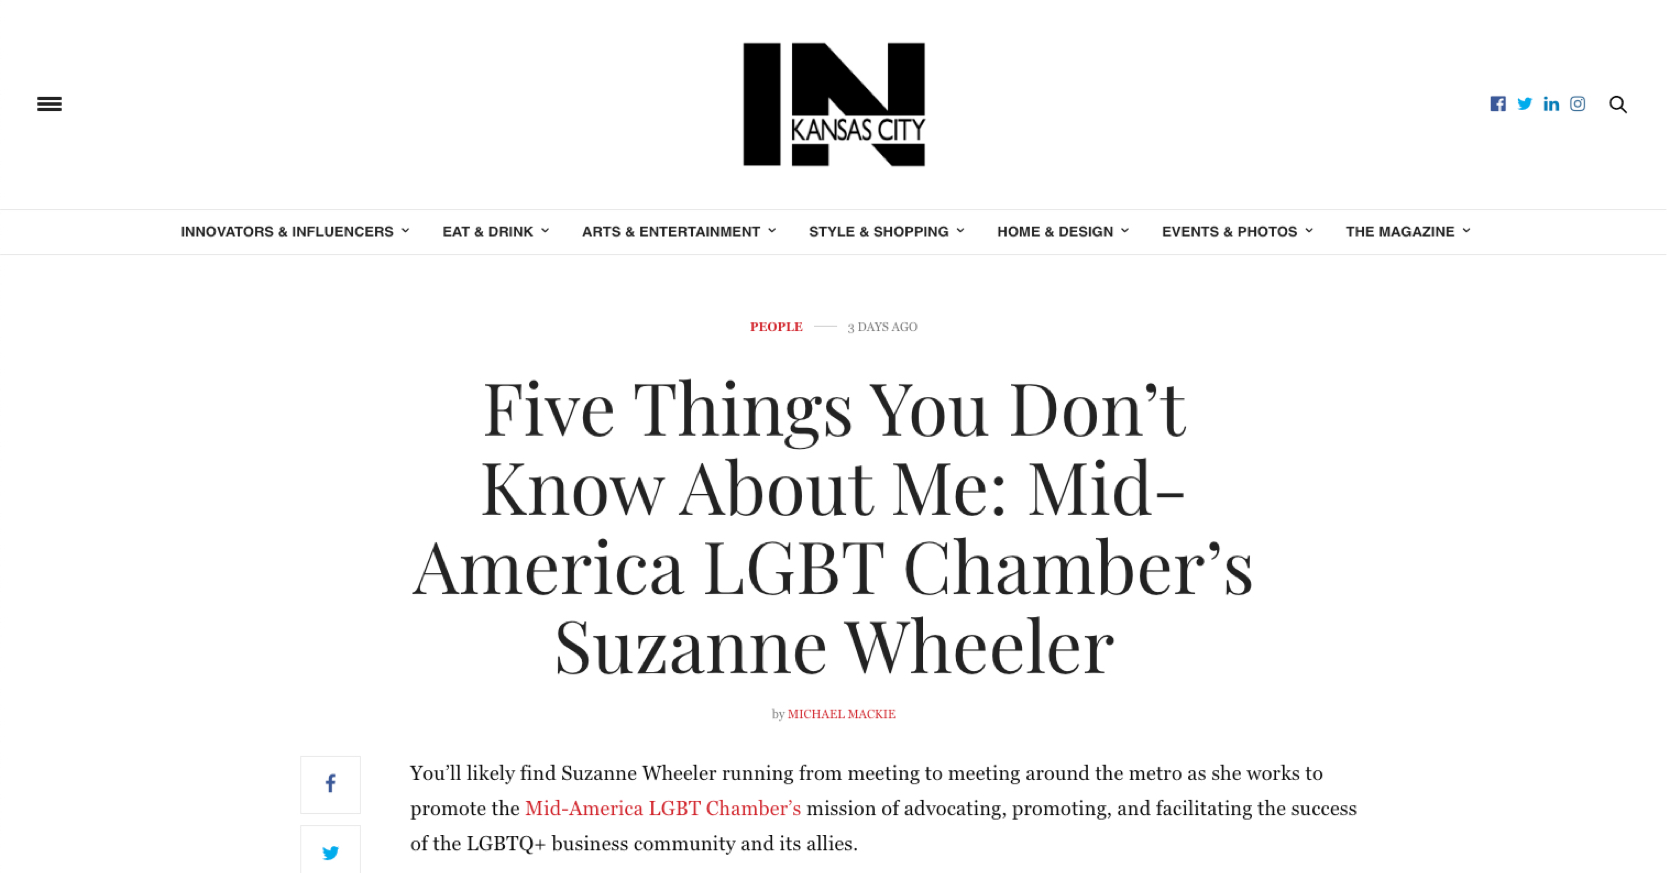 midamerica_lgbt-feature_image-5_things_about_suzanne